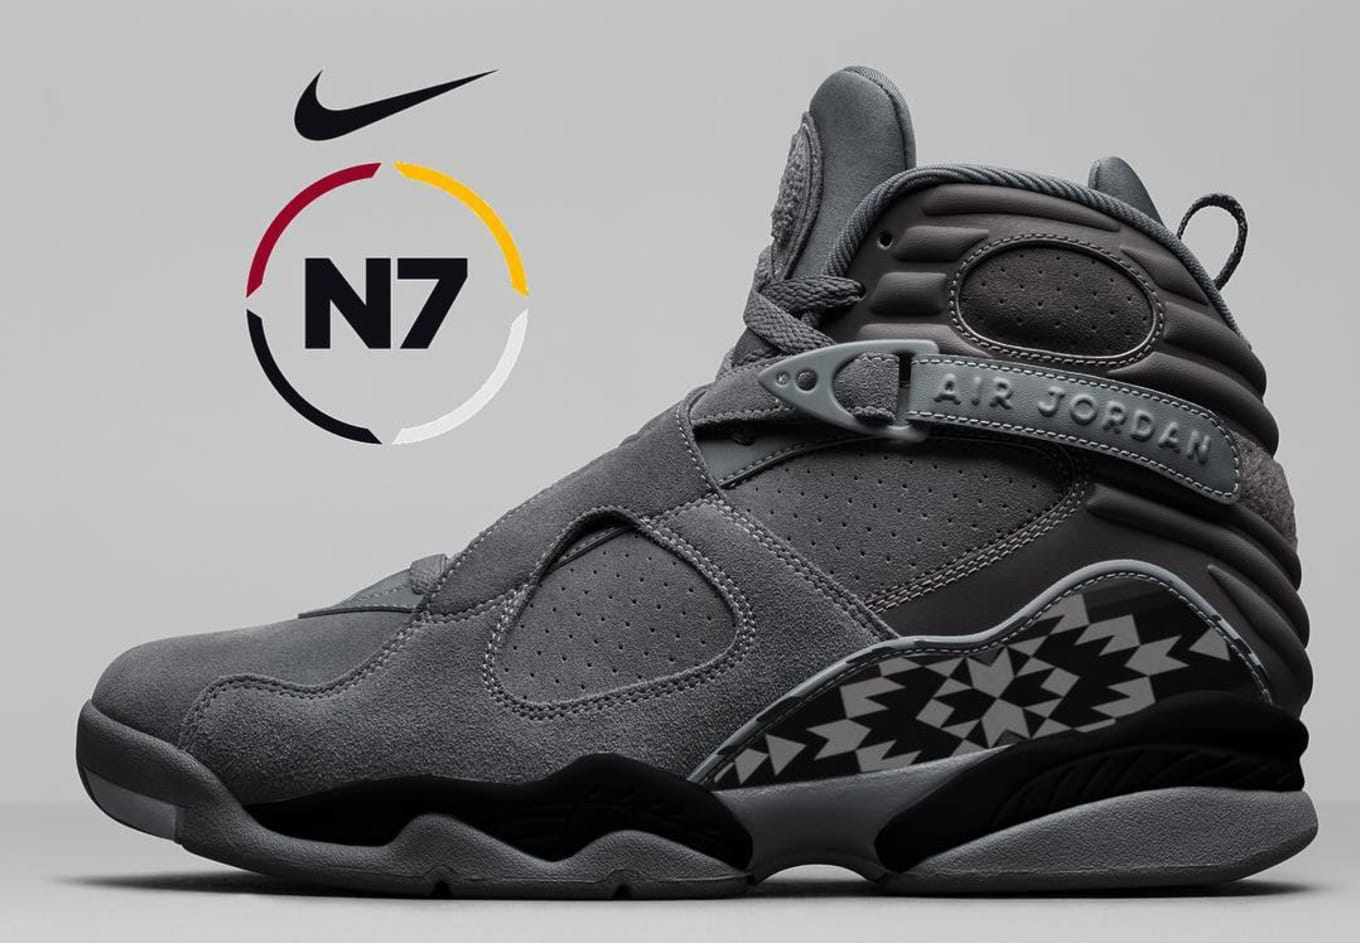 e88e569a669 Air Jordan 8 Retro 'N7' Release Date 11/7/19 CQ9601-001 | Sole Collector